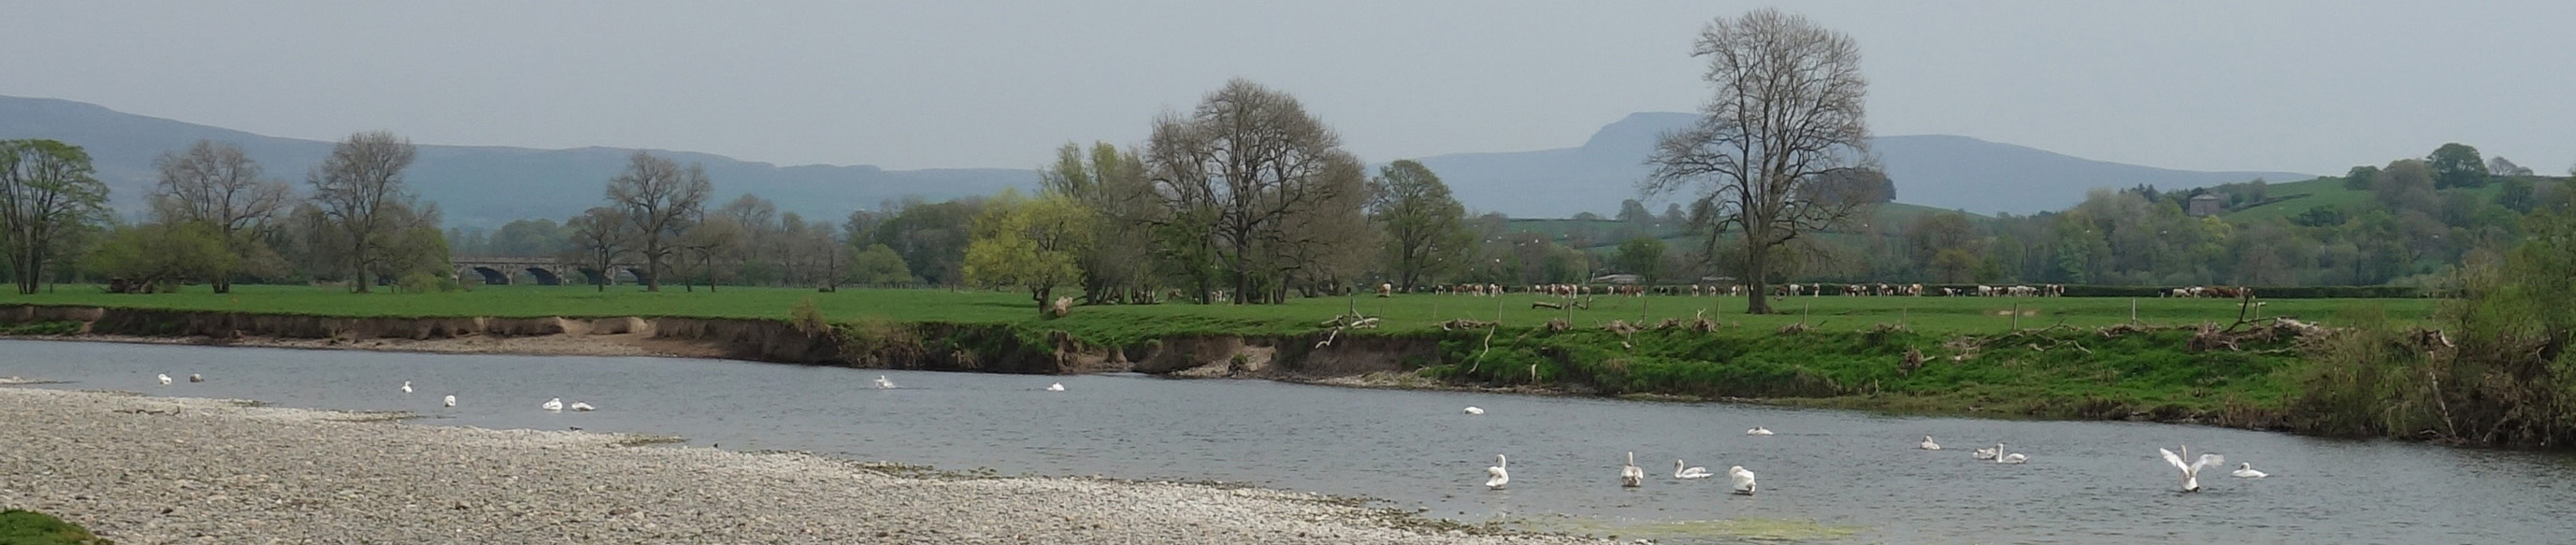 swans on Lune